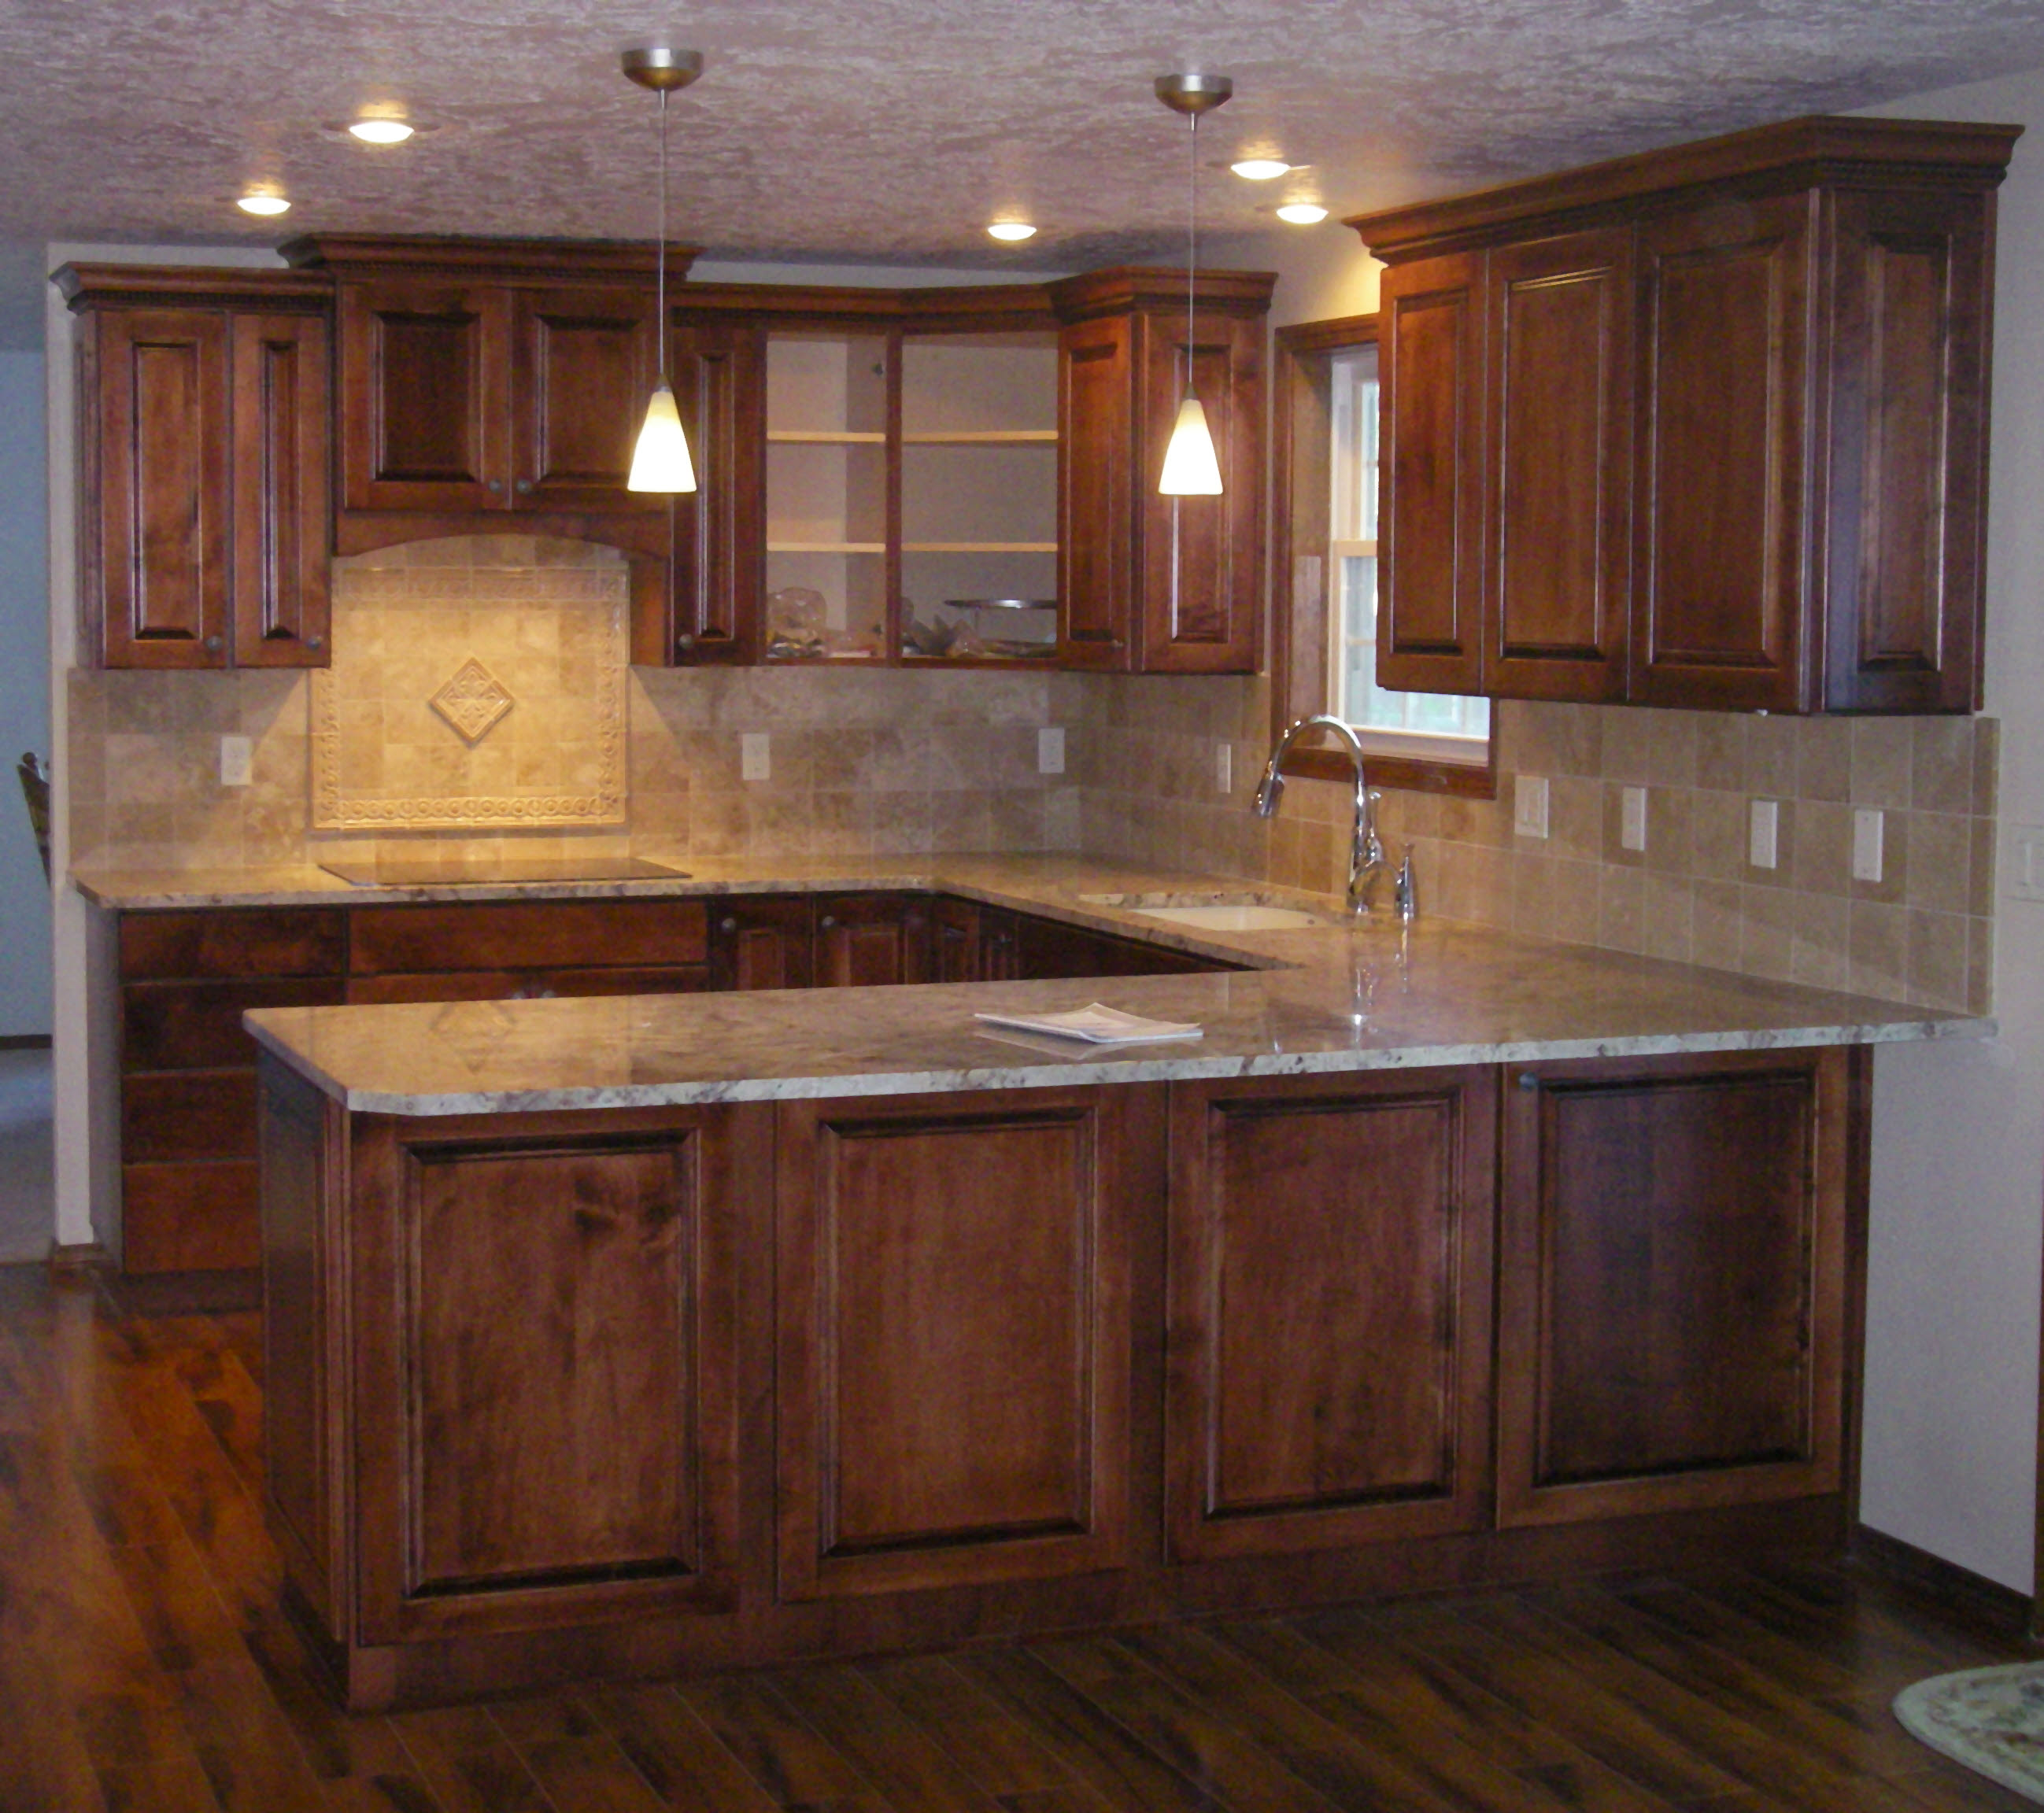 Kitchen Cupboards Gallery: Cabinets For Homes, Remodels